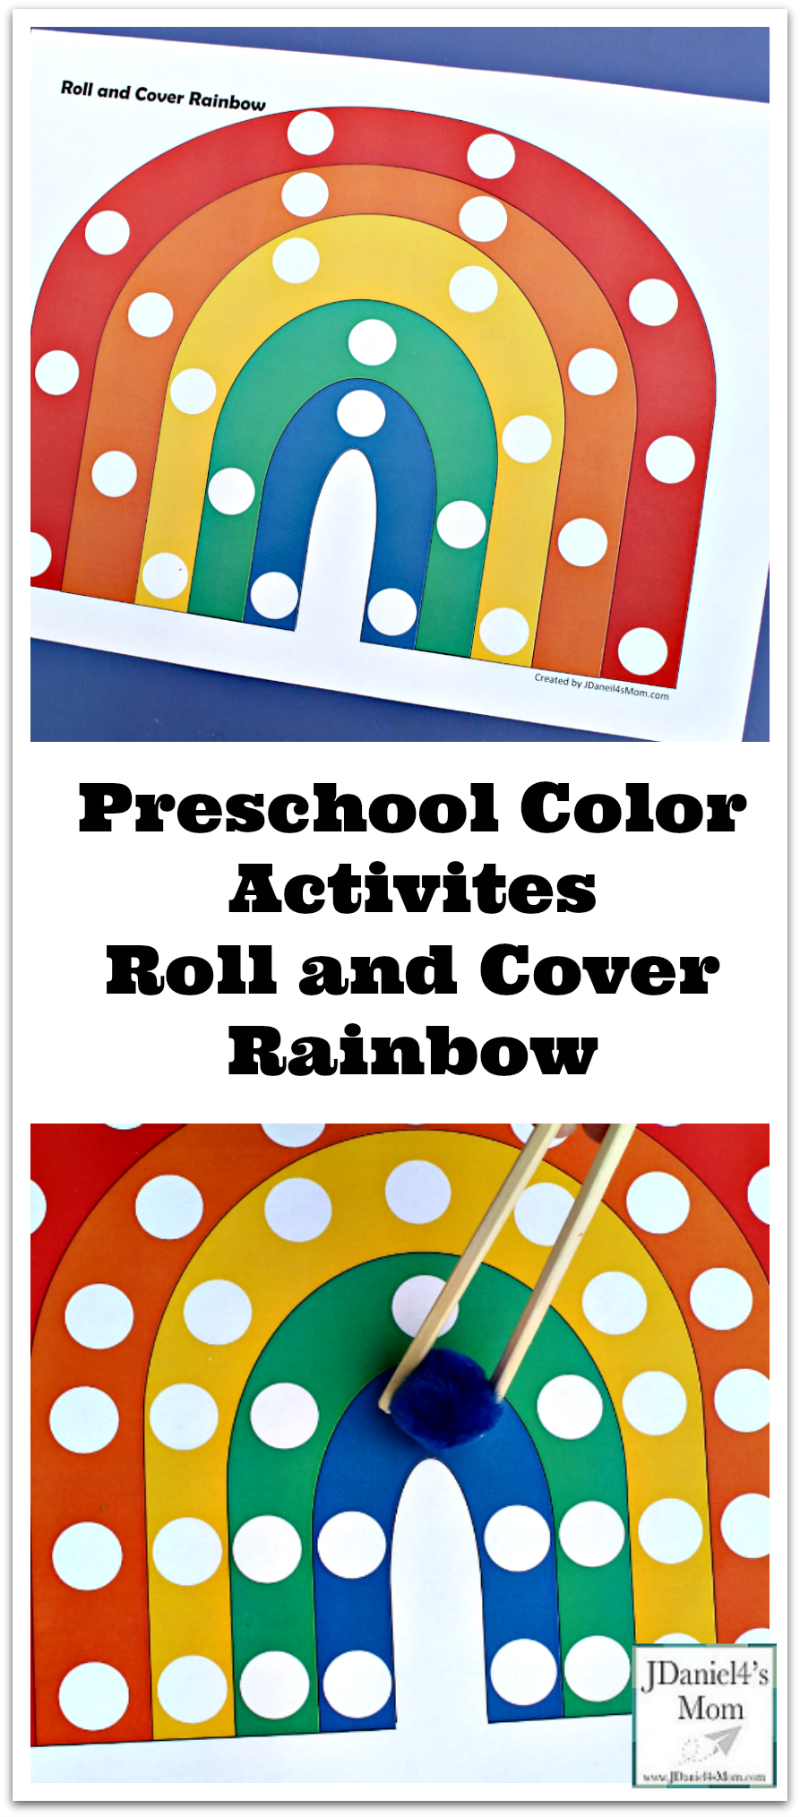 Preschool Color Activites - Roll and Cover Rainbow ...